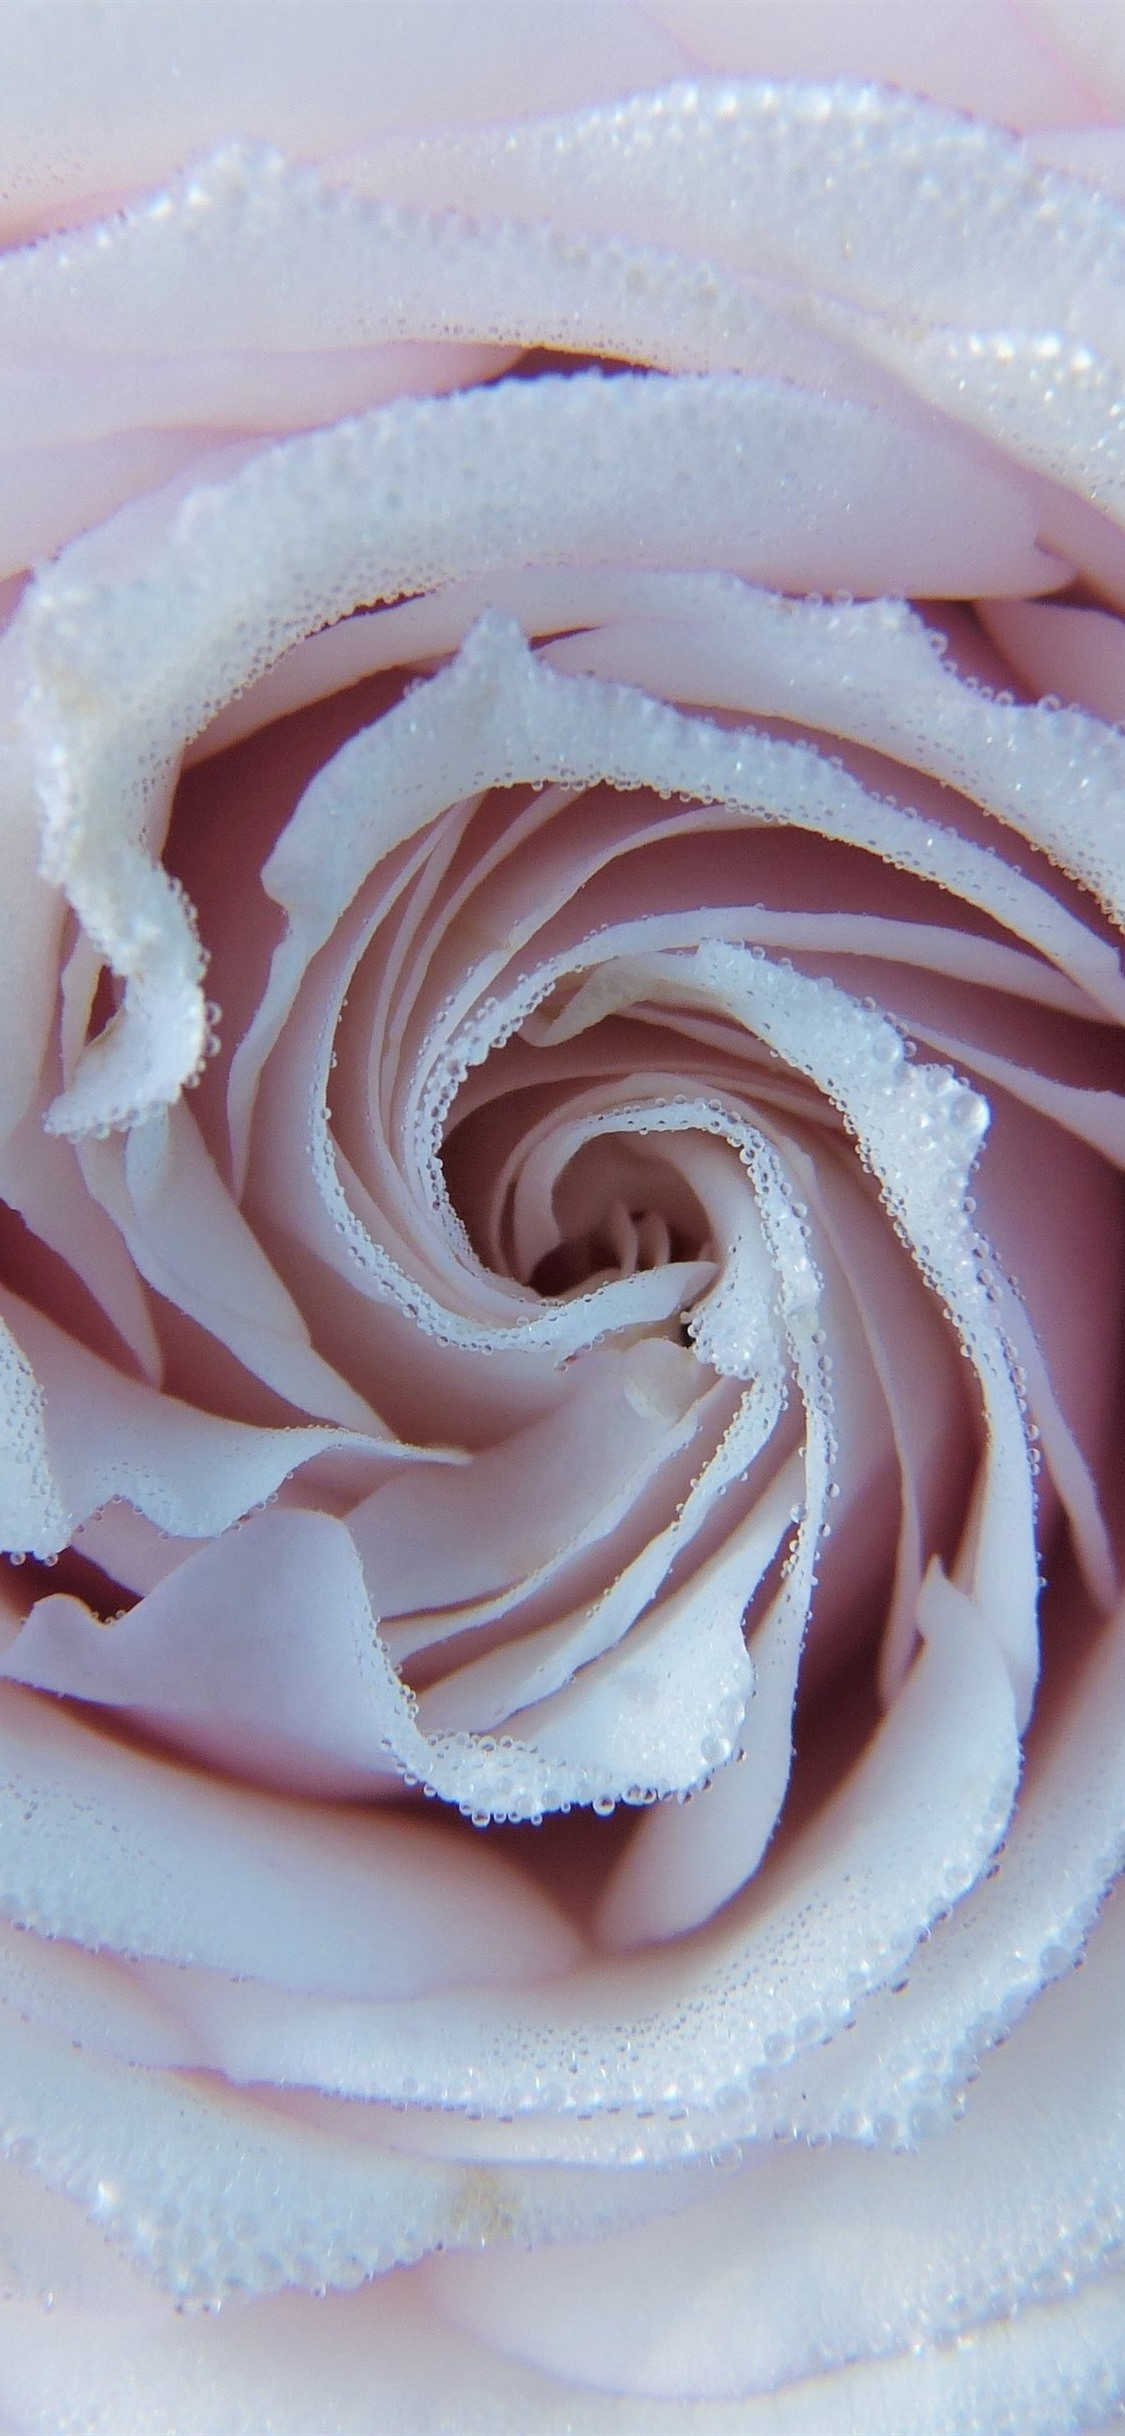 Light Pink Rose Many Water Droplets 1125x2436 Iphone 11 Pro Xs X Wallpaper Background Picture Image